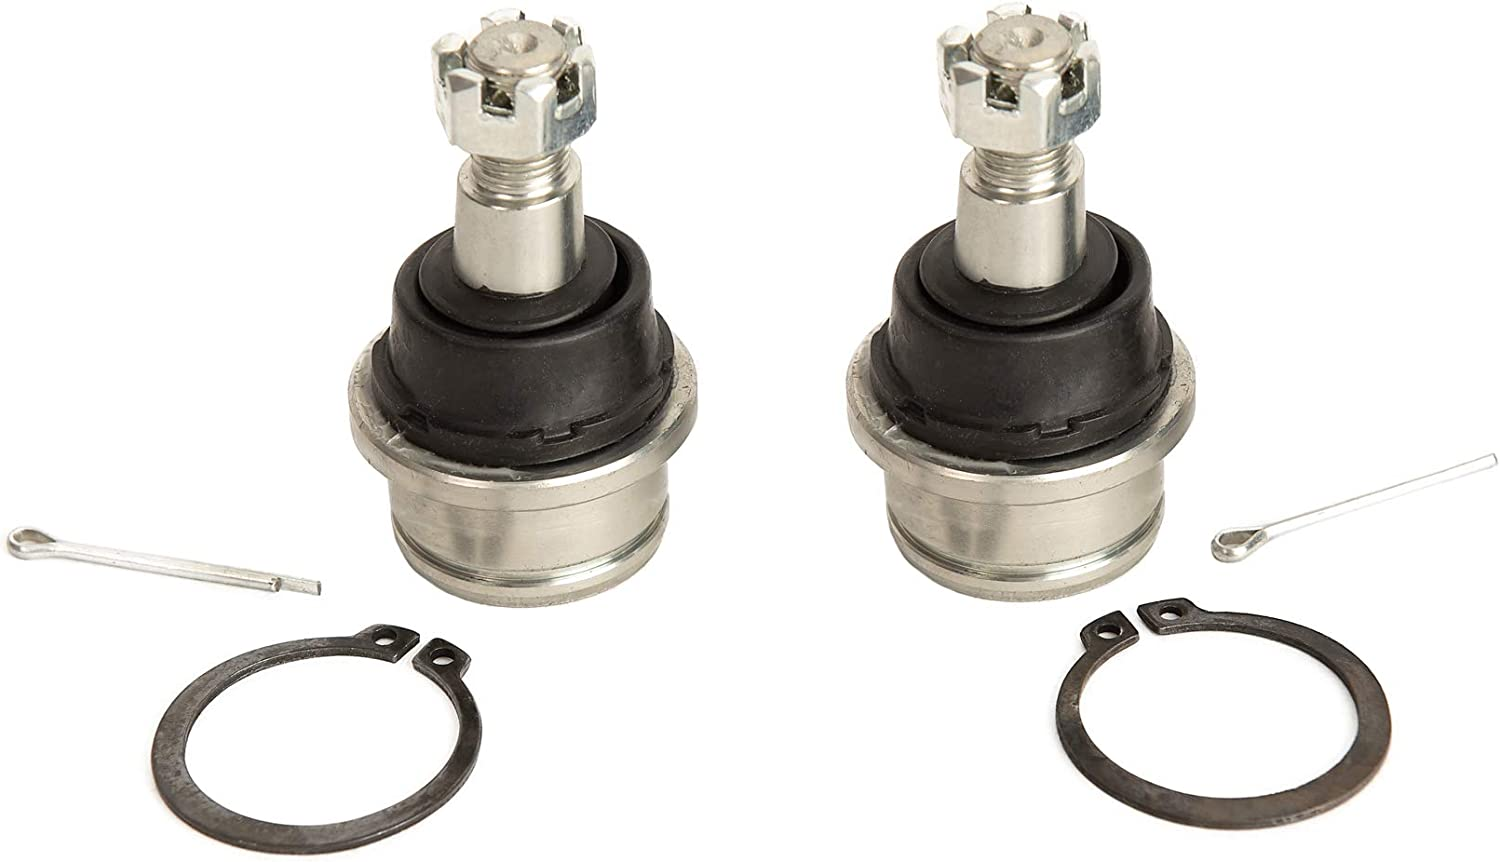 American Star 4130 Chromoly Lower Ball Joint for 2007 Yamaha Grizzly 700